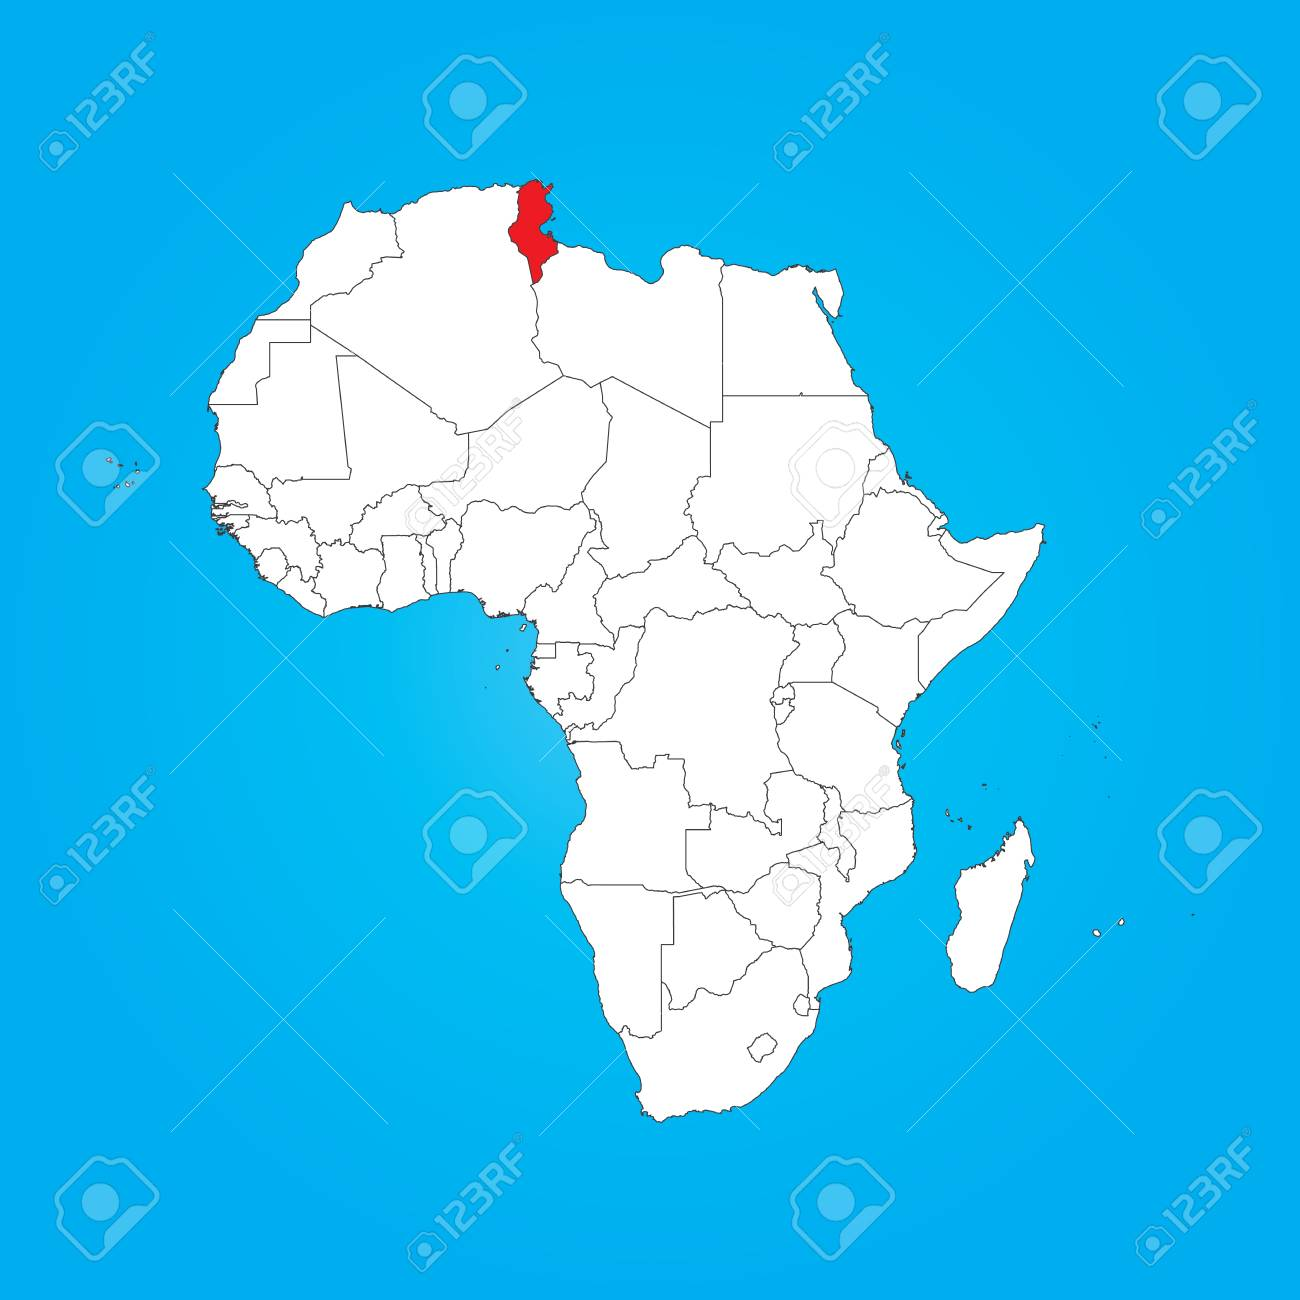 A Map Of Africa With A Selected Country Of Tunisia Stock Photo